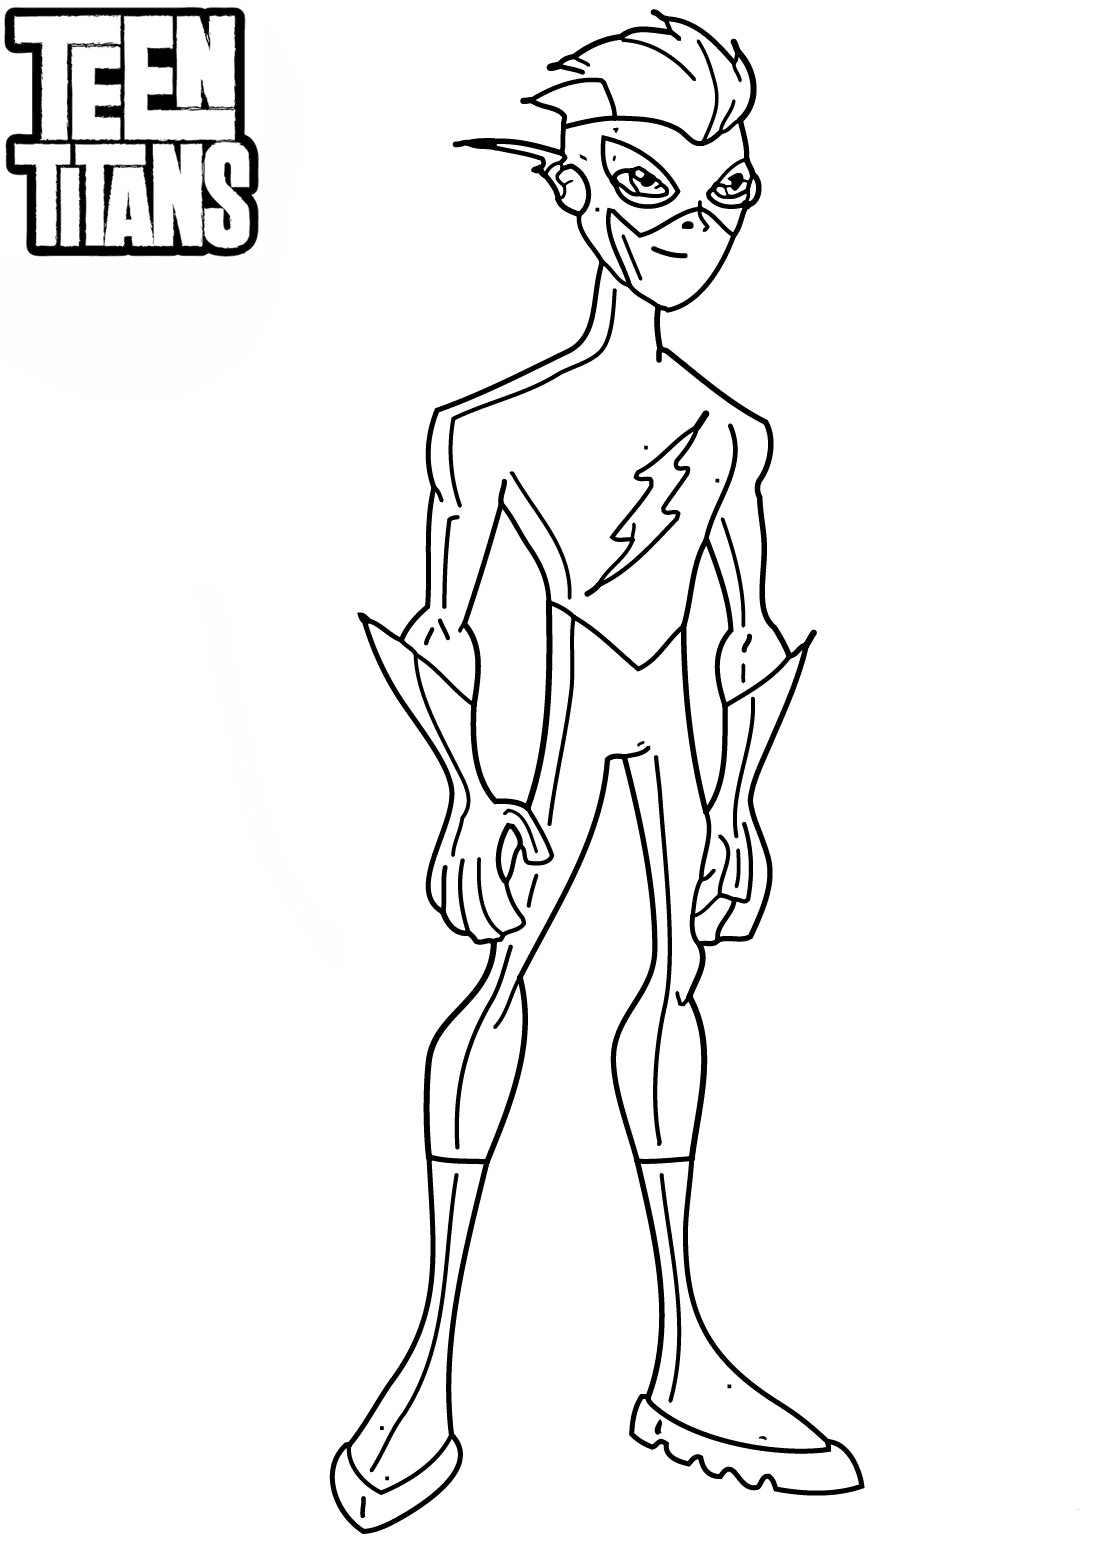 Teen Titans Coloring Page Kid Flash